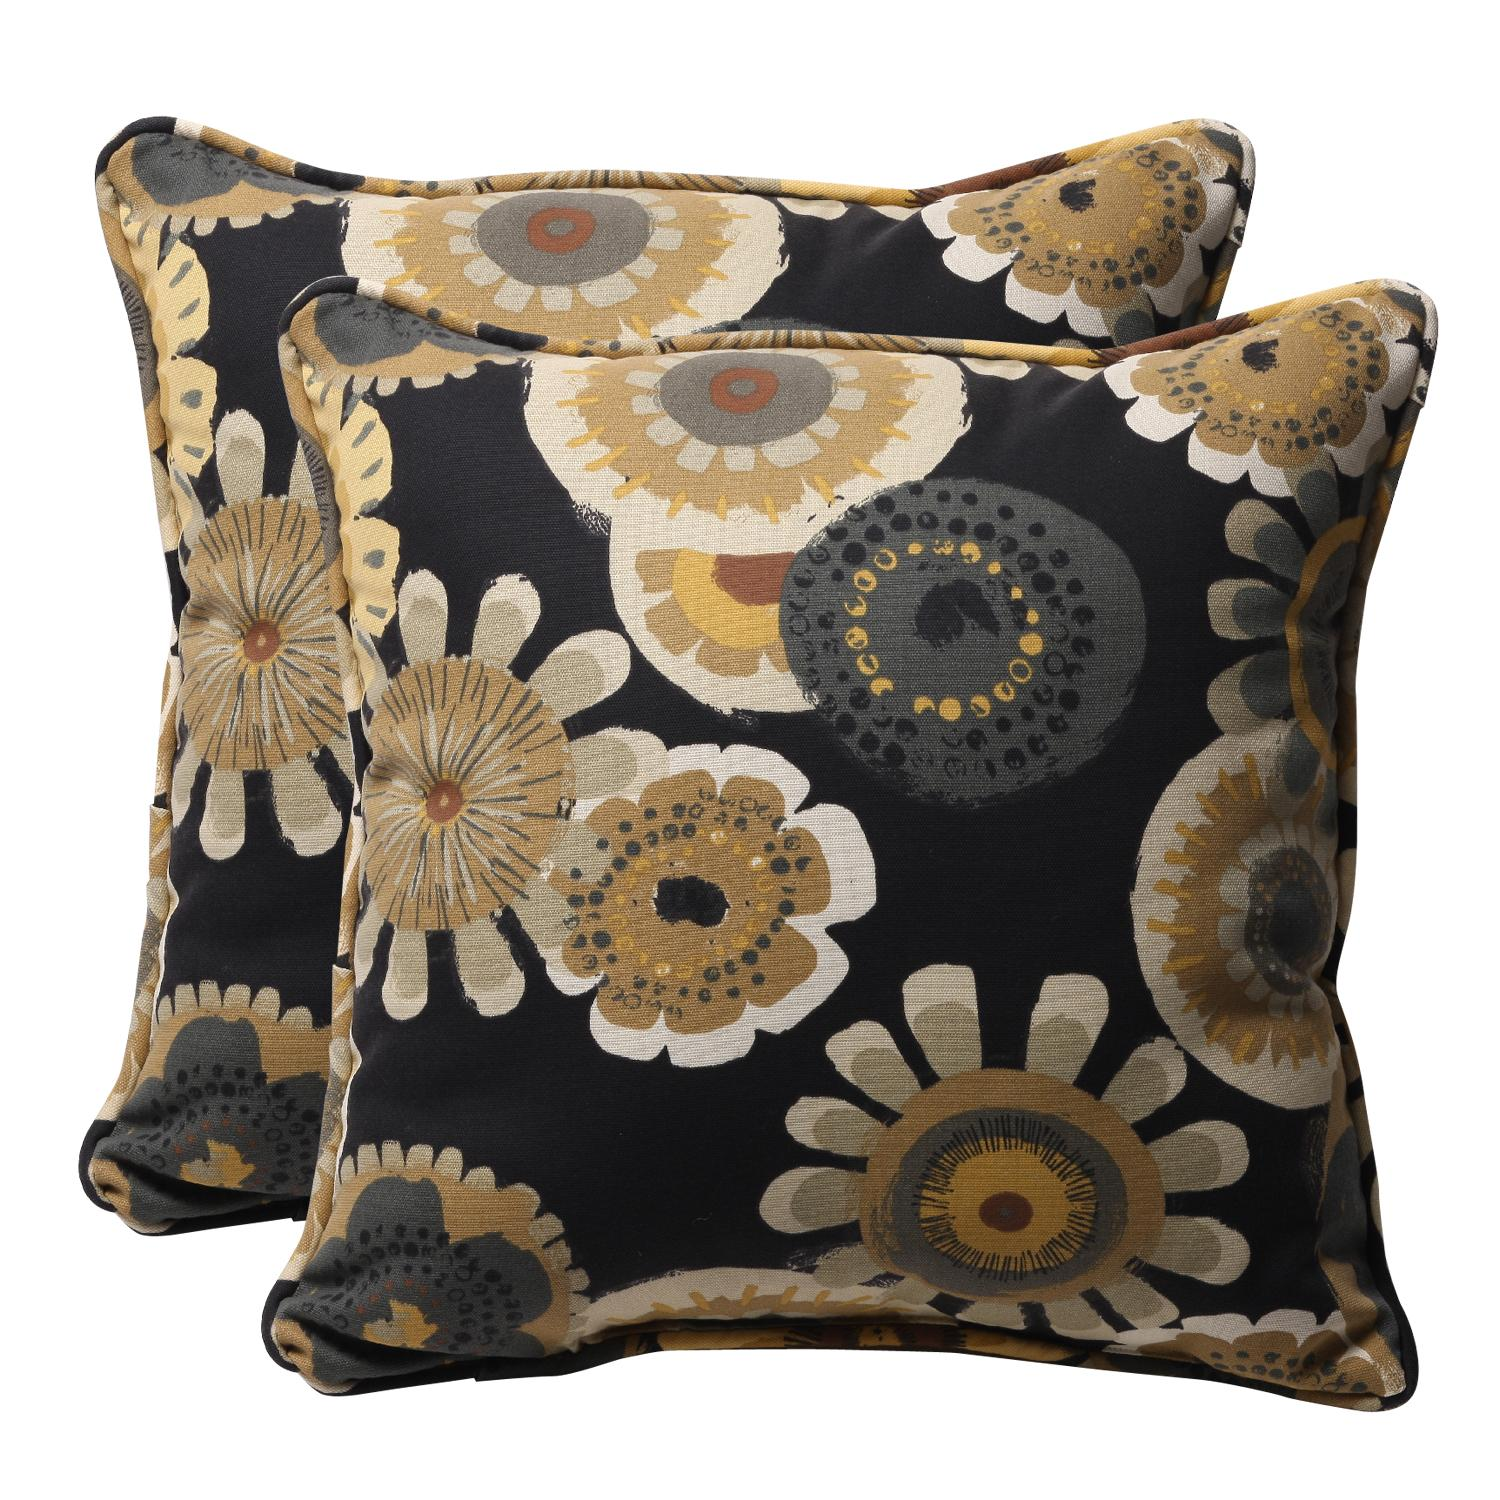 Pack of 2 Eco-Friendly Recycled Black/Yellow Floral Outdoor Throw Pillows 18.5""